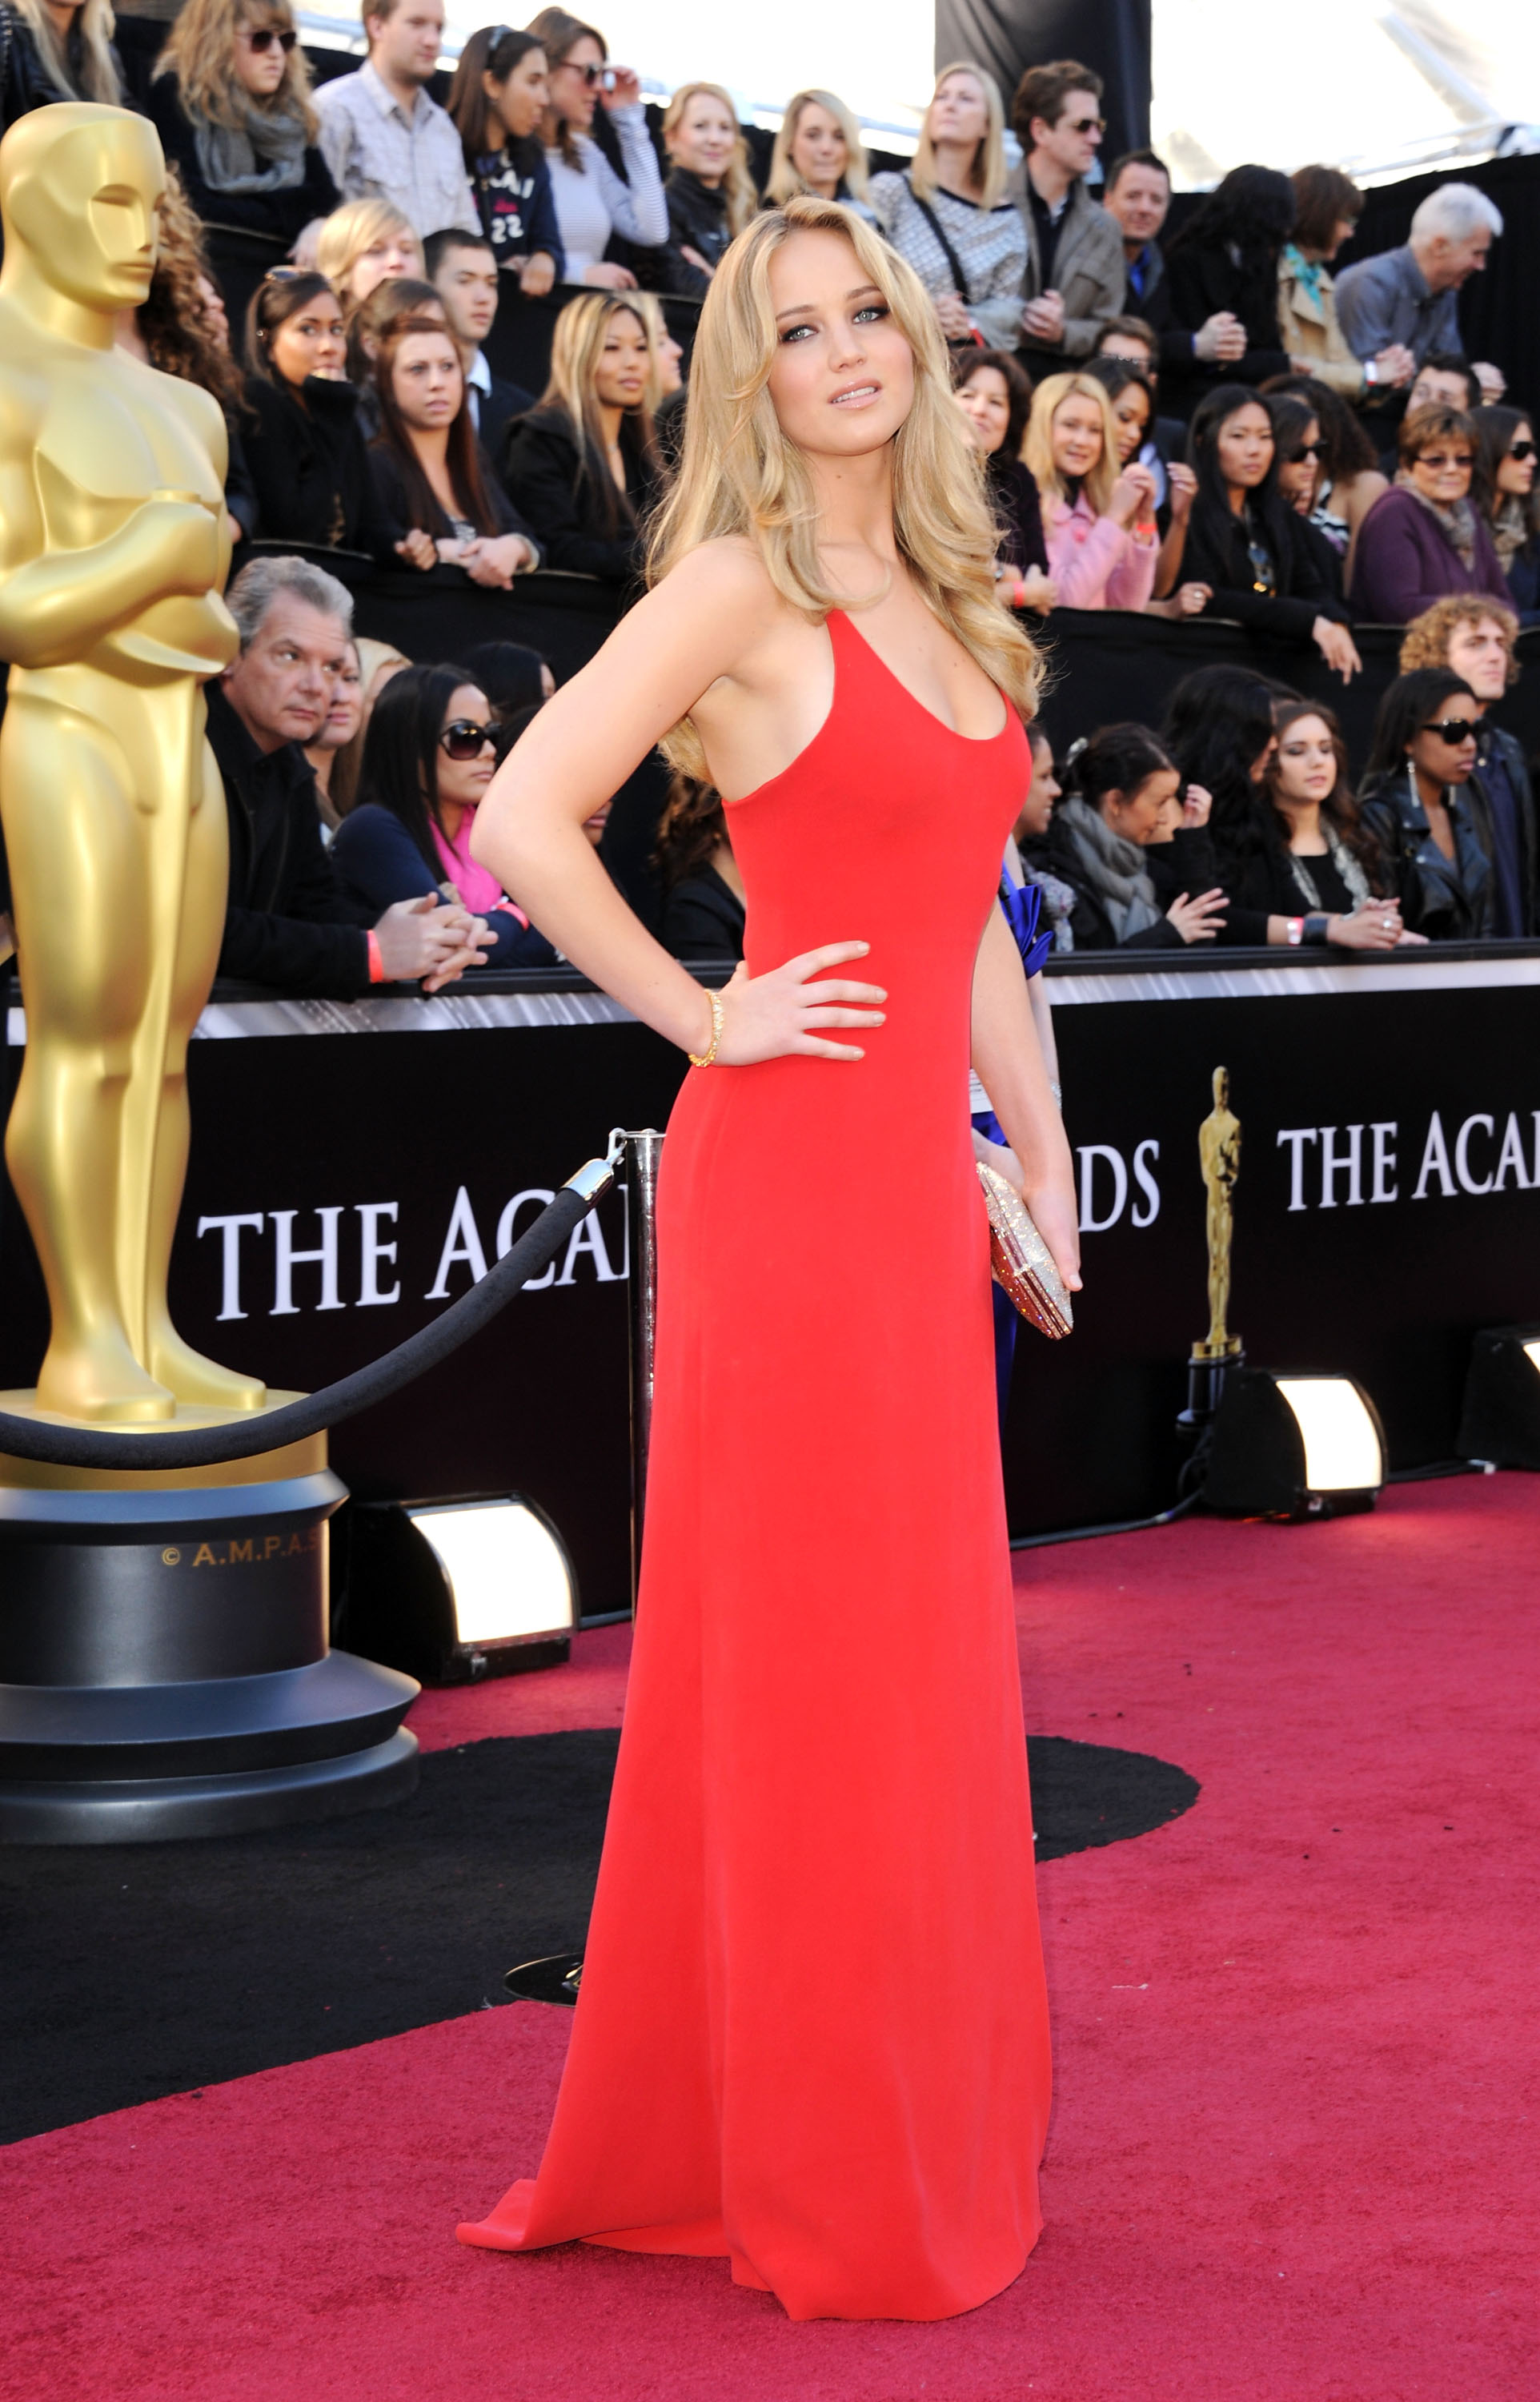 Jennifer Lawrence  at the 83rd annual Academy Awards on Feb. 27, 2011 in Los Angeles.